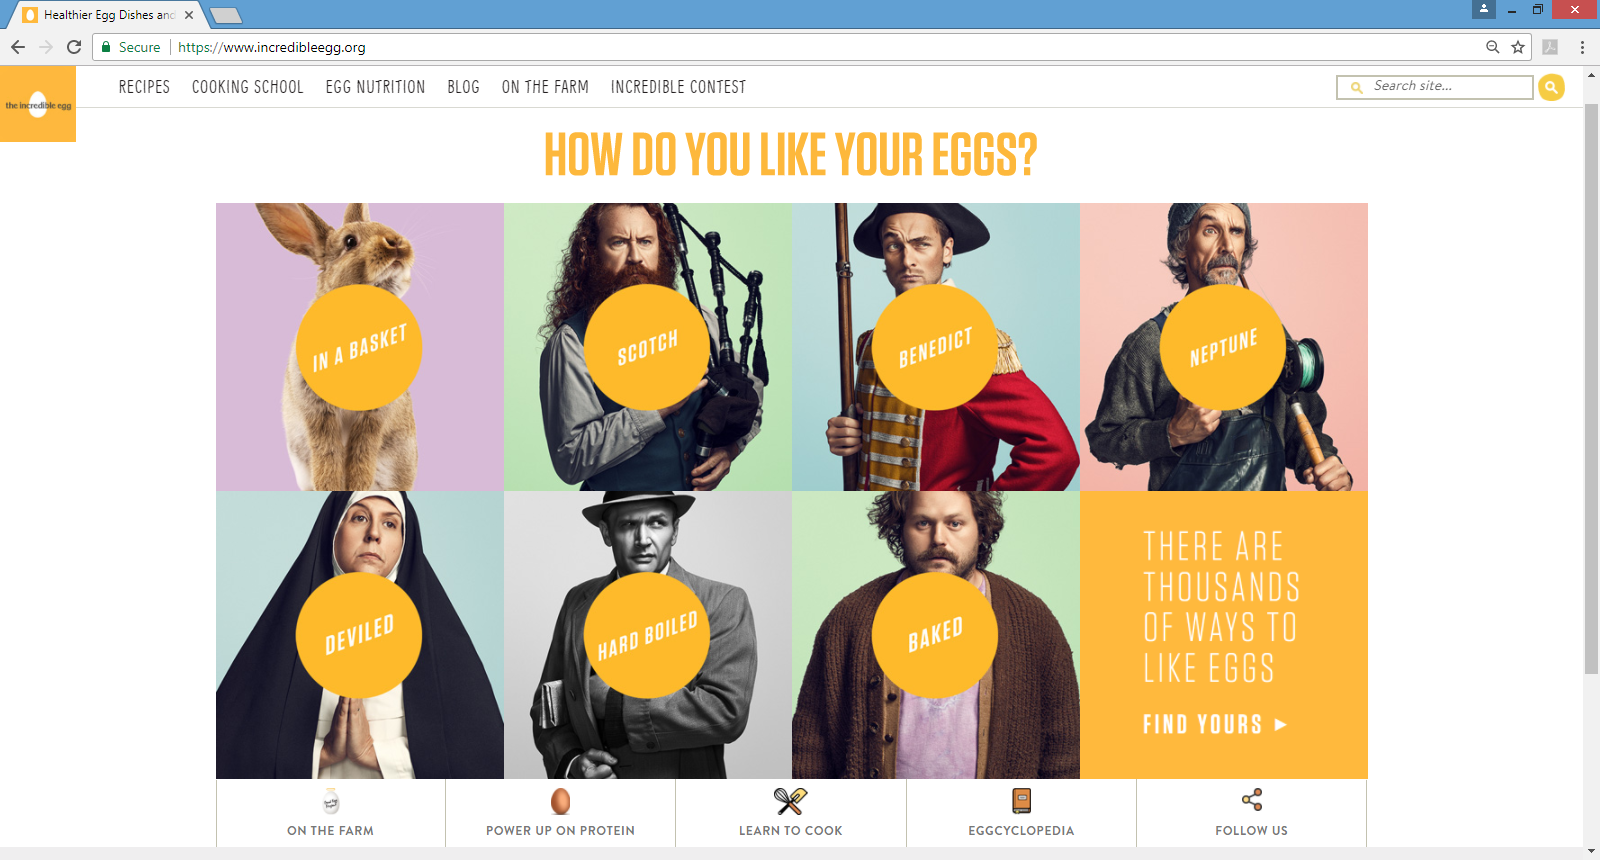 Website Find: The Incredible Egg